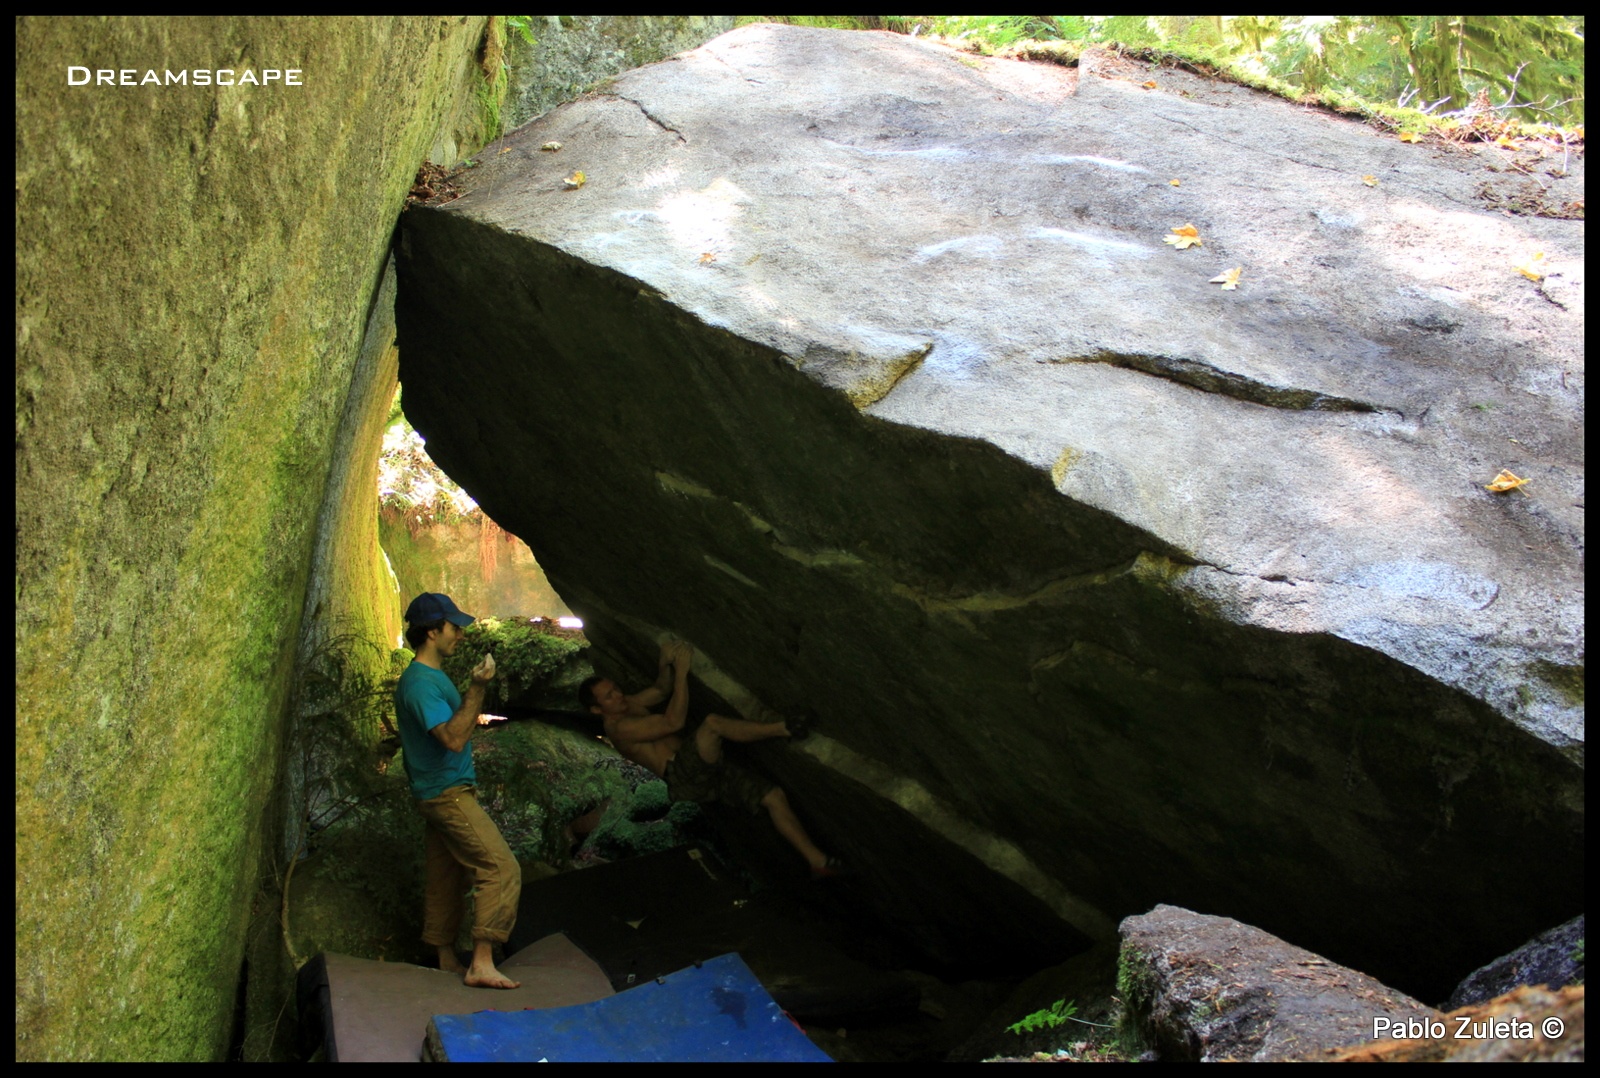 Jesse Evans getting the first ascent of Dreamscape-V9, with Pablo Zuleta on spot.